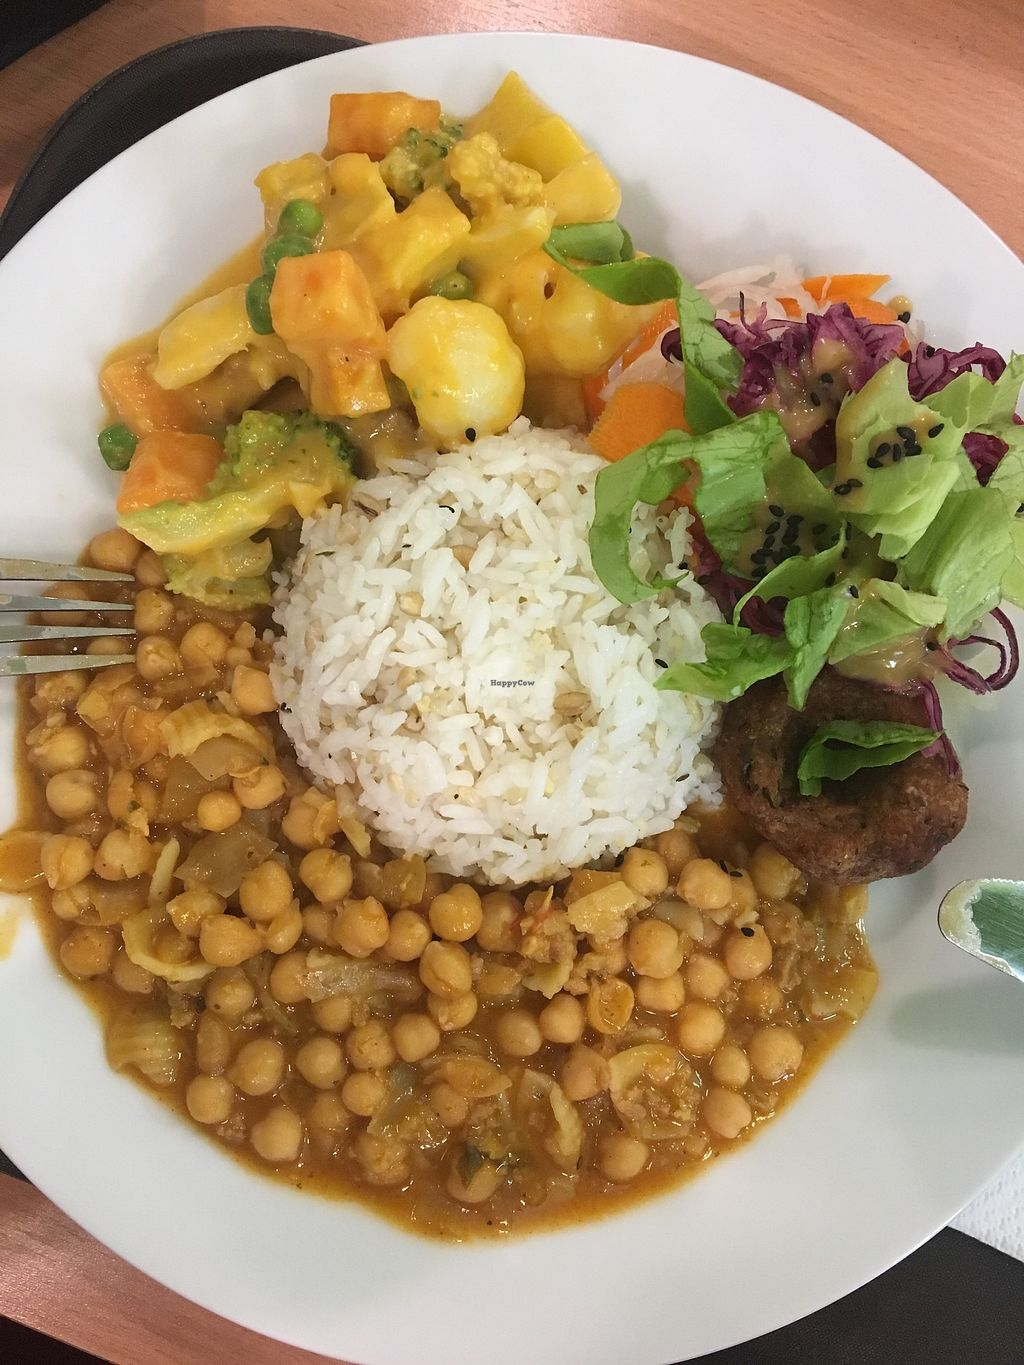 "Photo of Mennyorszag Szive  by <a href=""/members/profile/tcsengusz"">tcsengusz</a> <br/>Daily menu, rice, chickpea stew, bean patty, veggies in creamy pumpkin sauce, salad <br/> September 22, 2017  - <a href='/contact/abuse/image/58231/307065'>Report</a>"